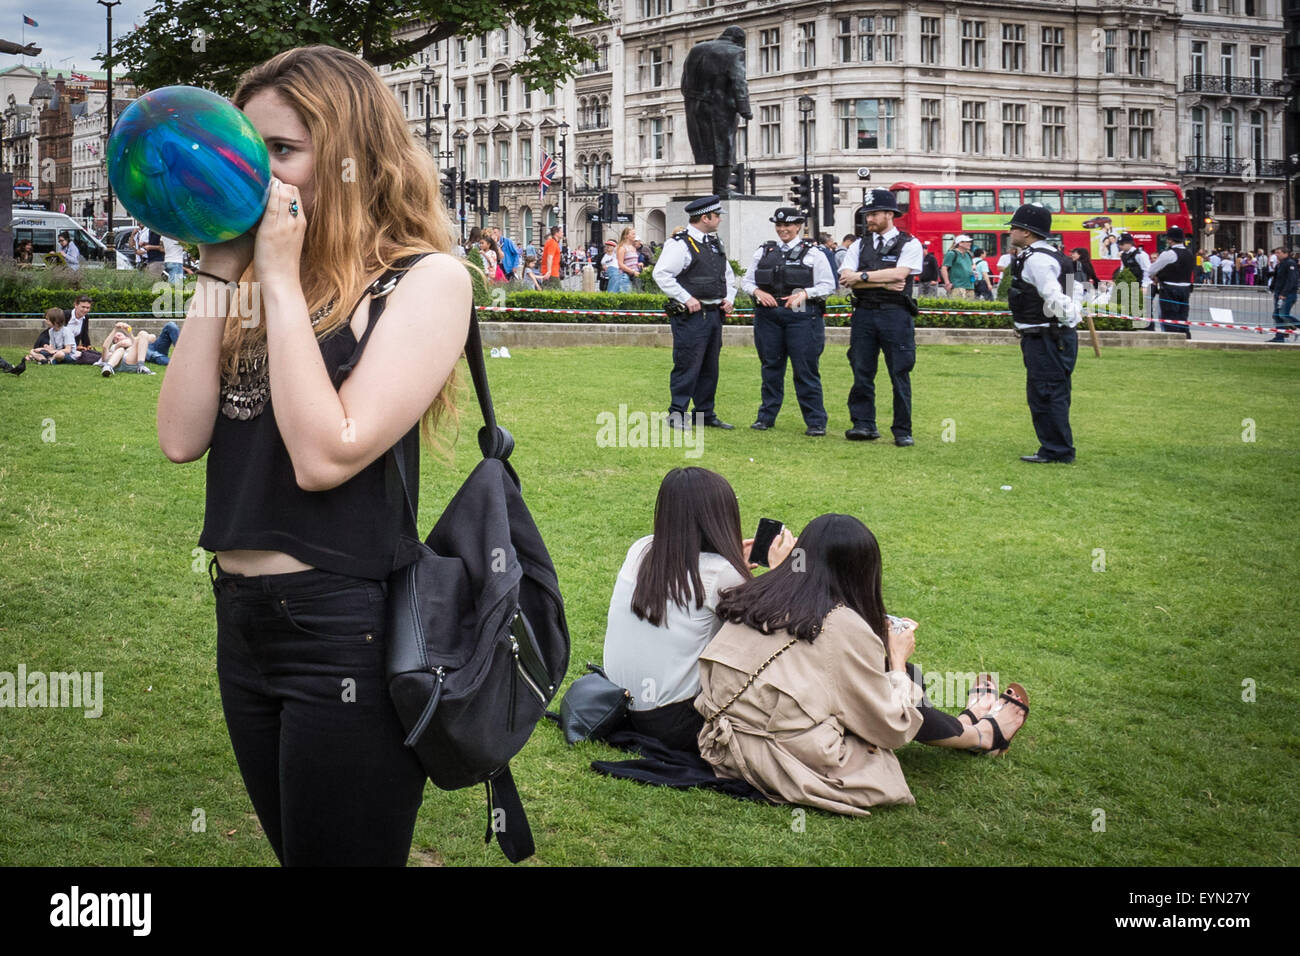 """London, UK. 1st August, 2015. Campaigners inhale balloons inflated with nitrous oxide, commonly known as """"laughing gas"""" to get high during a protest in Westminster's Parliament Square against a proposed bill that aims to make selling any psychoactive substance illegal. Credit: Guy Corbishley/Alamy Live News Stock Photo"""